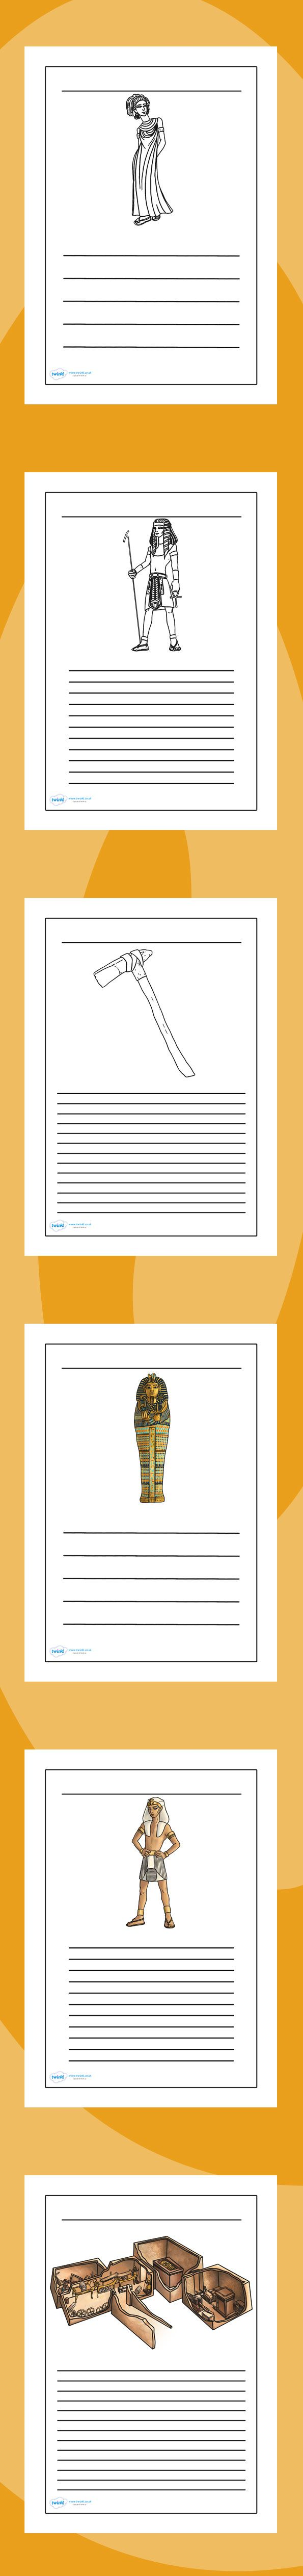 KS2 Ancient Egypt Writing Frames